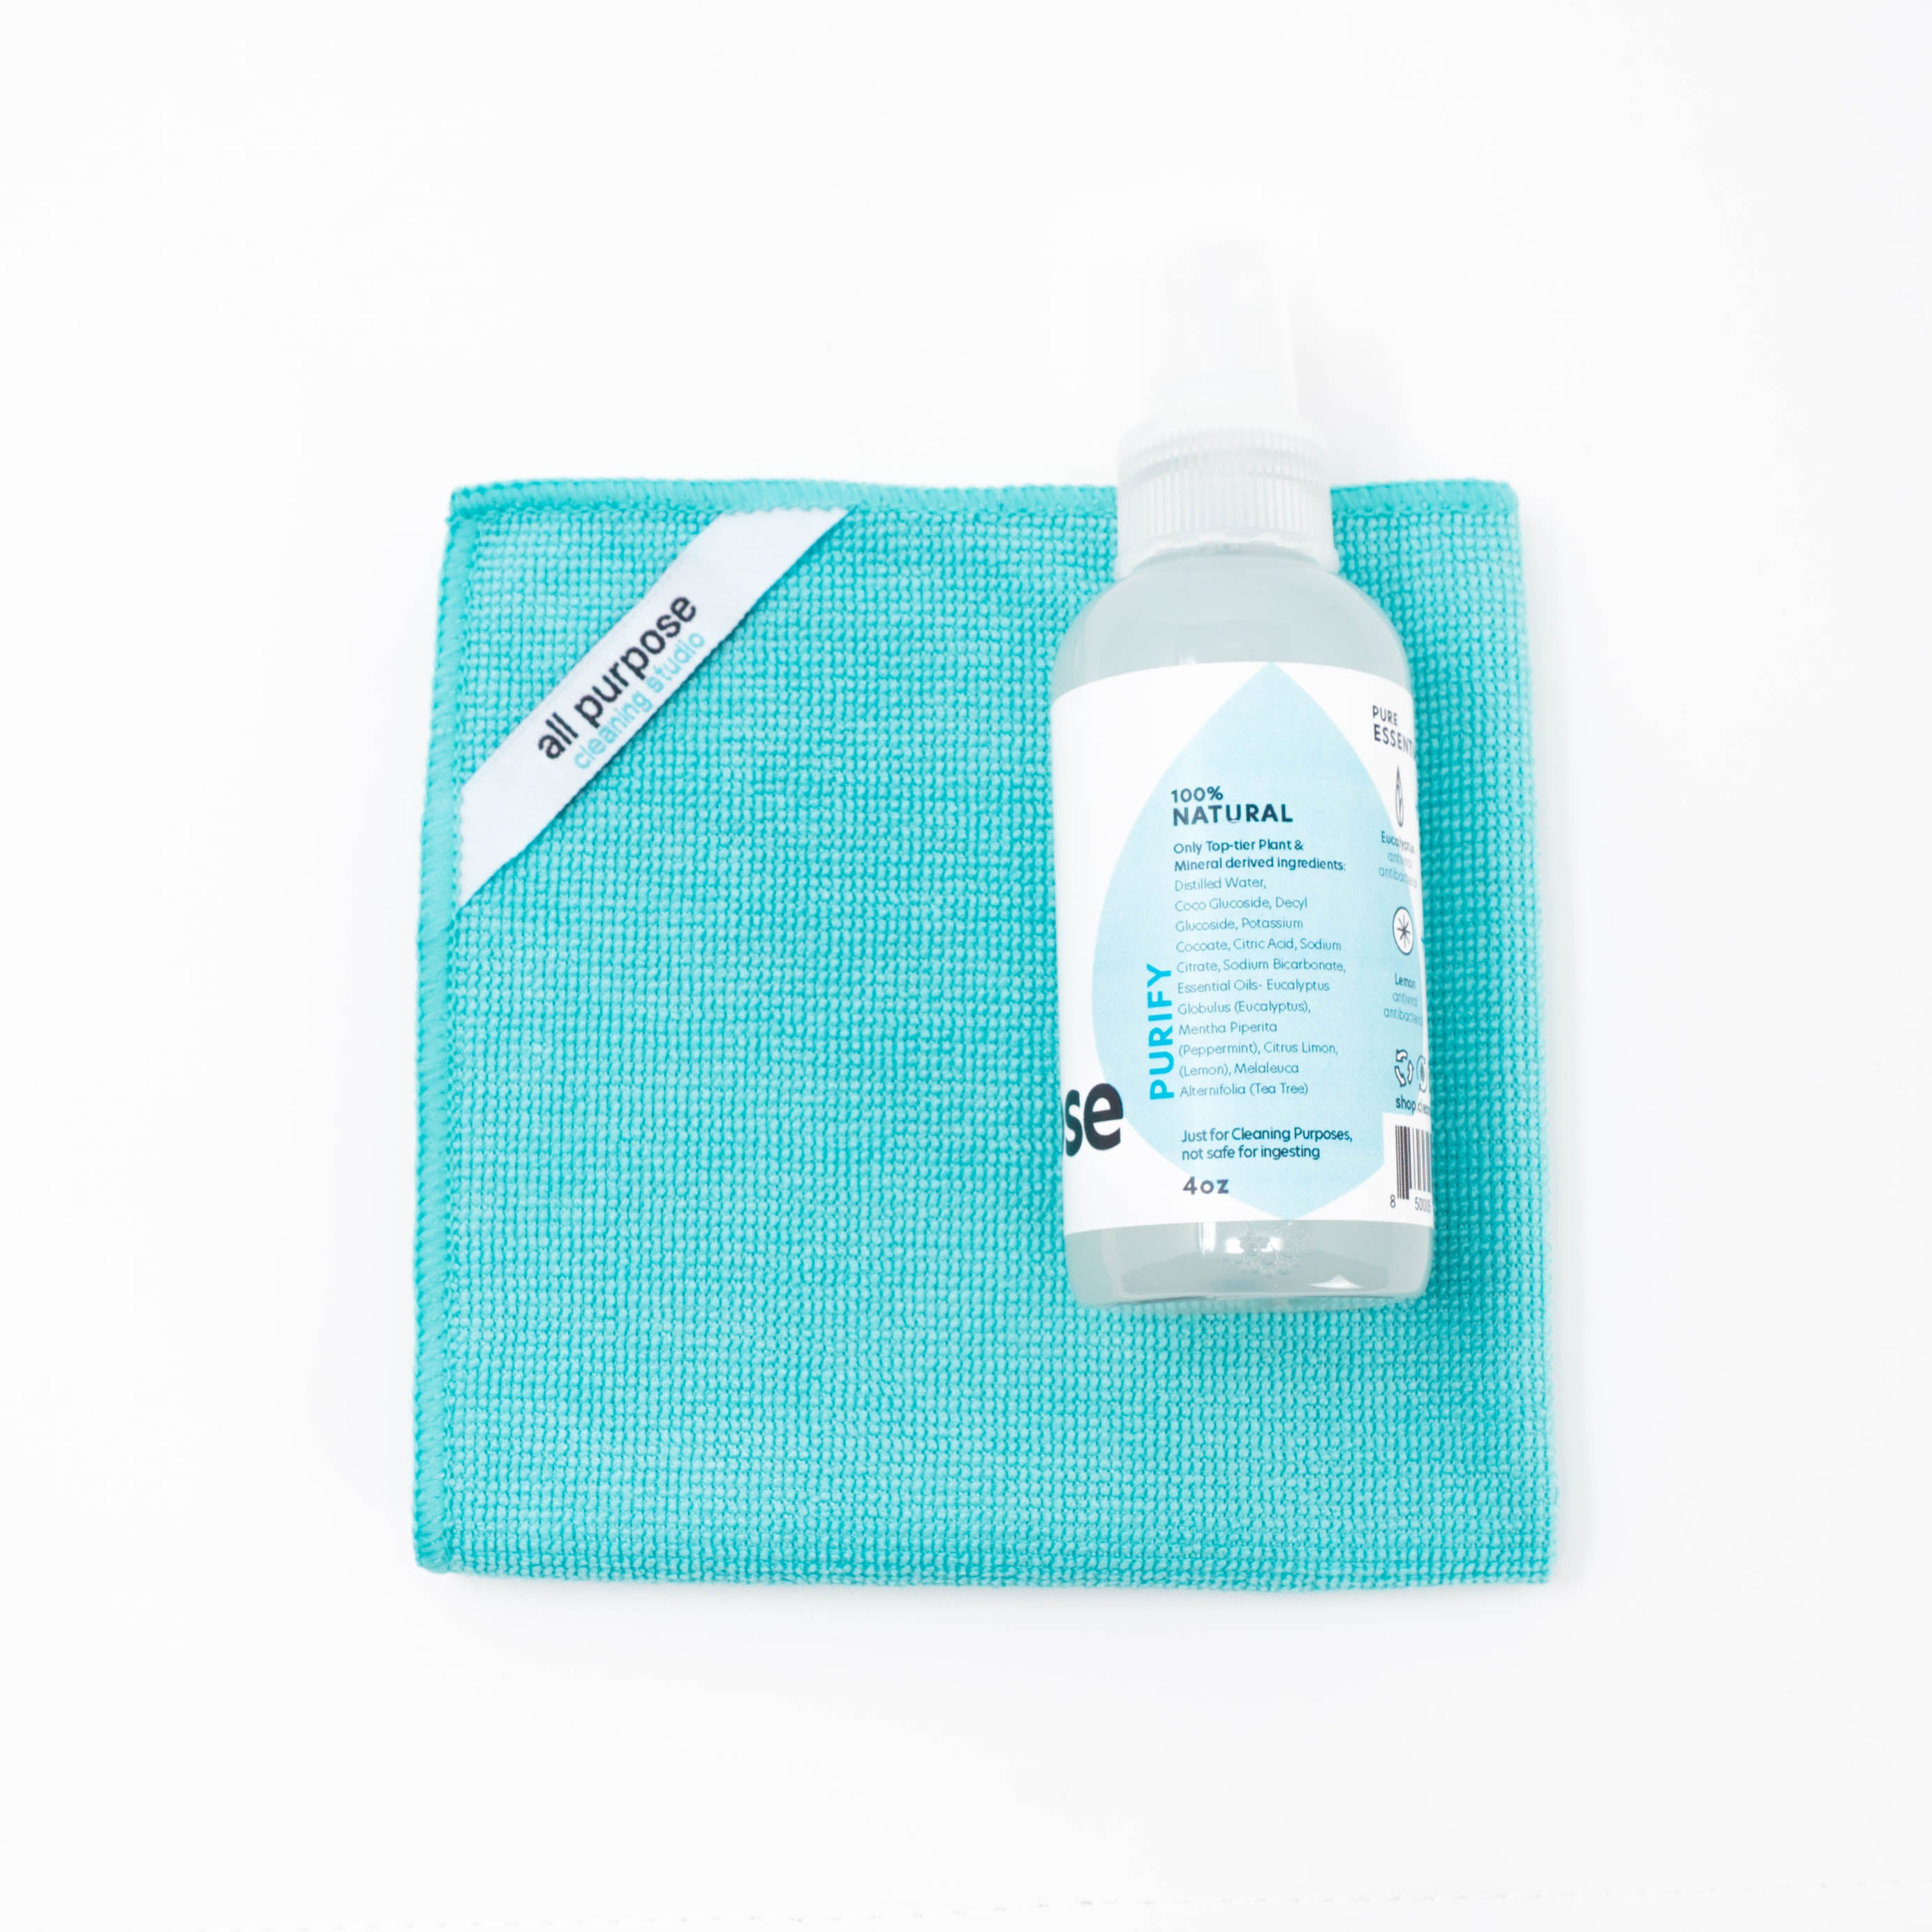 Mini All Purpose Cleaning Kit (4oz) | Portable All Purpose Cleaner Kit